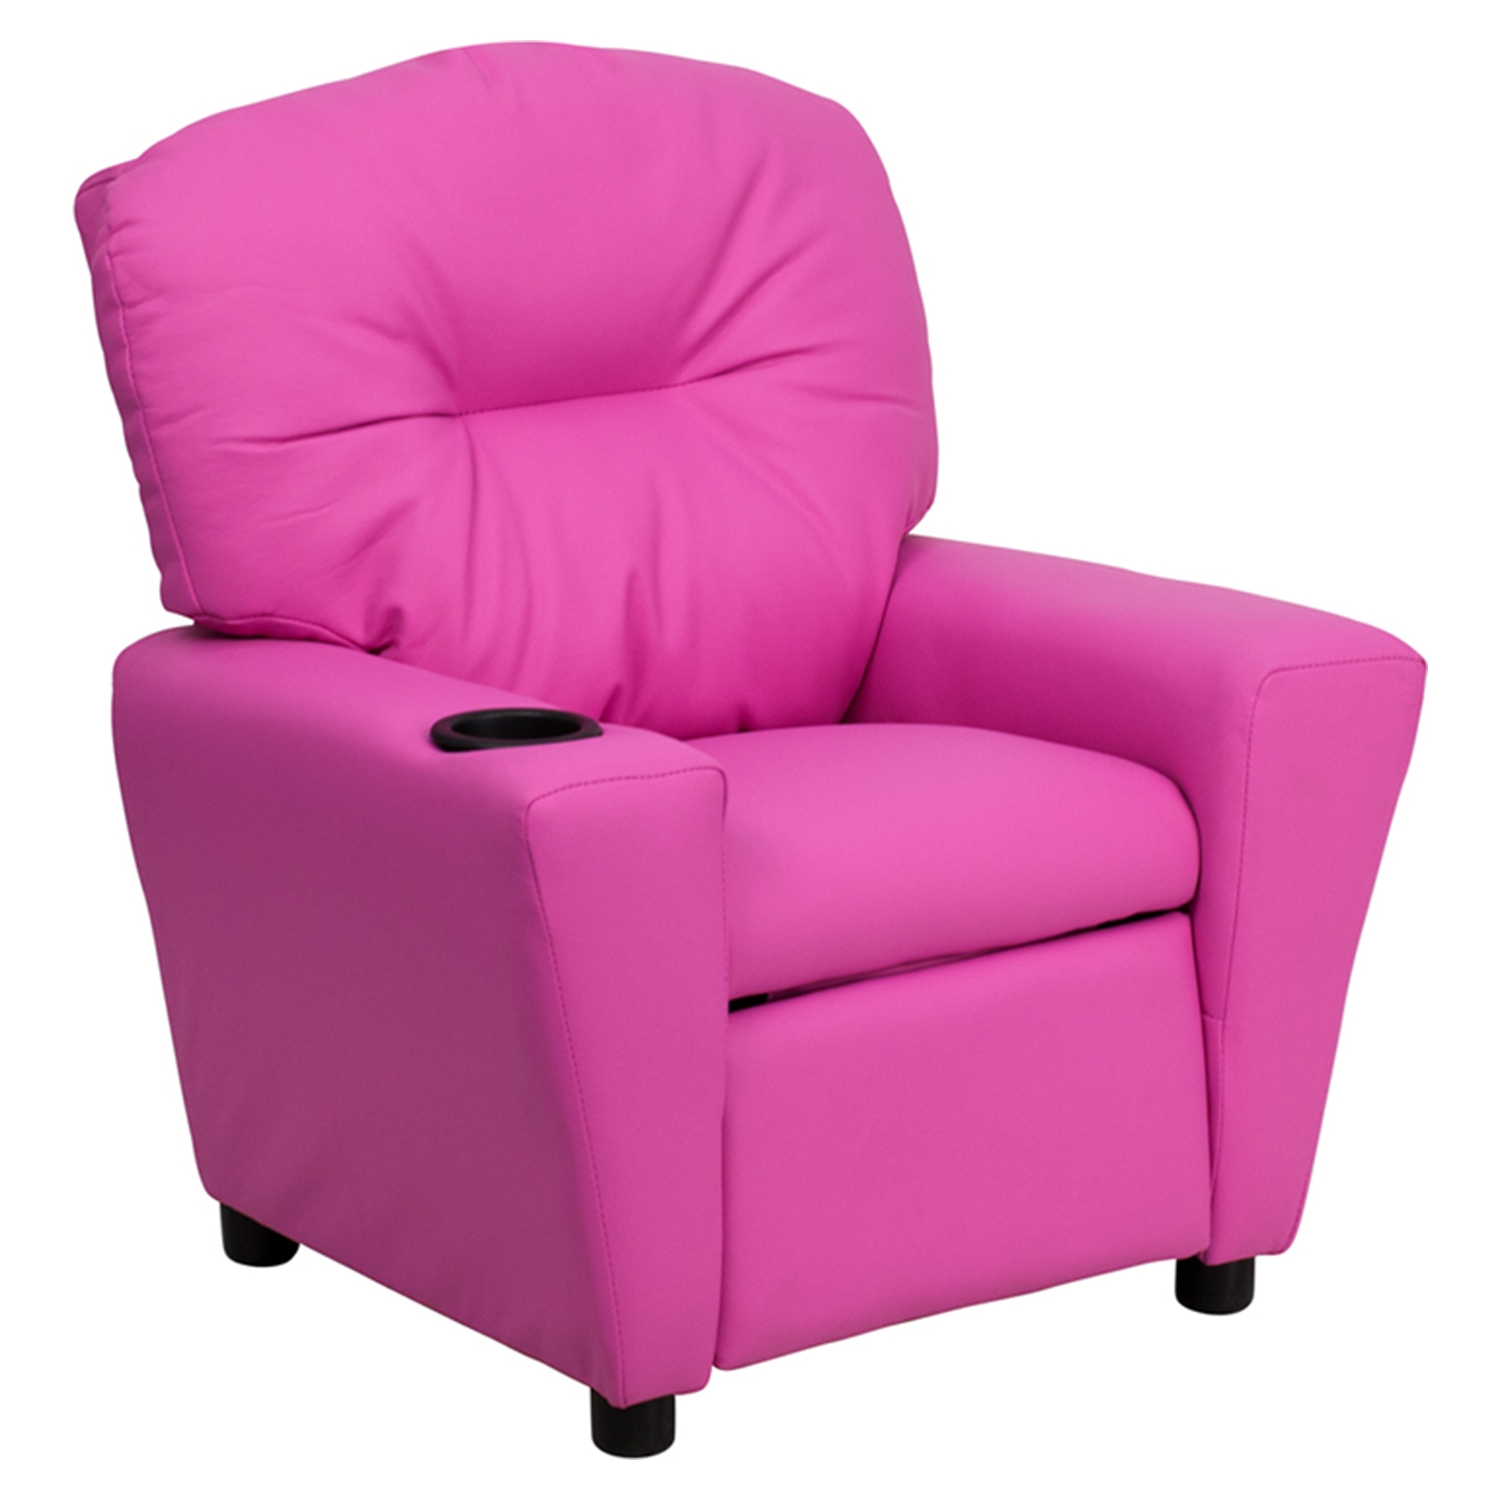 Upholstered Kids Recliner Chair   Cup Holder, Hot Pink   FLSH BT 7950 ...